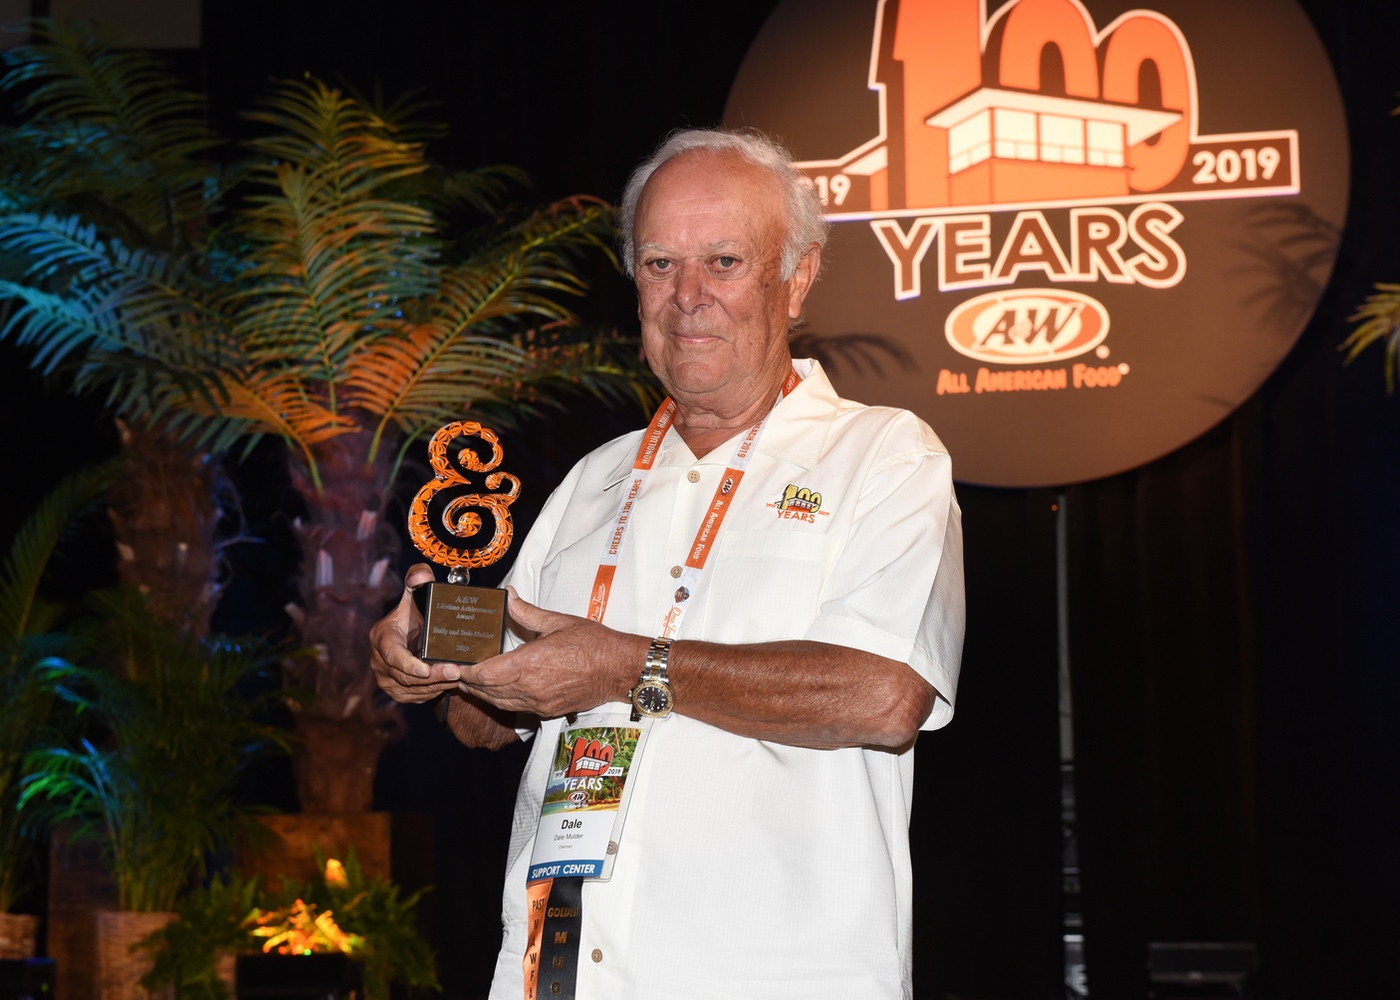 Photo of A&W Chairman Dale Mulder holding award